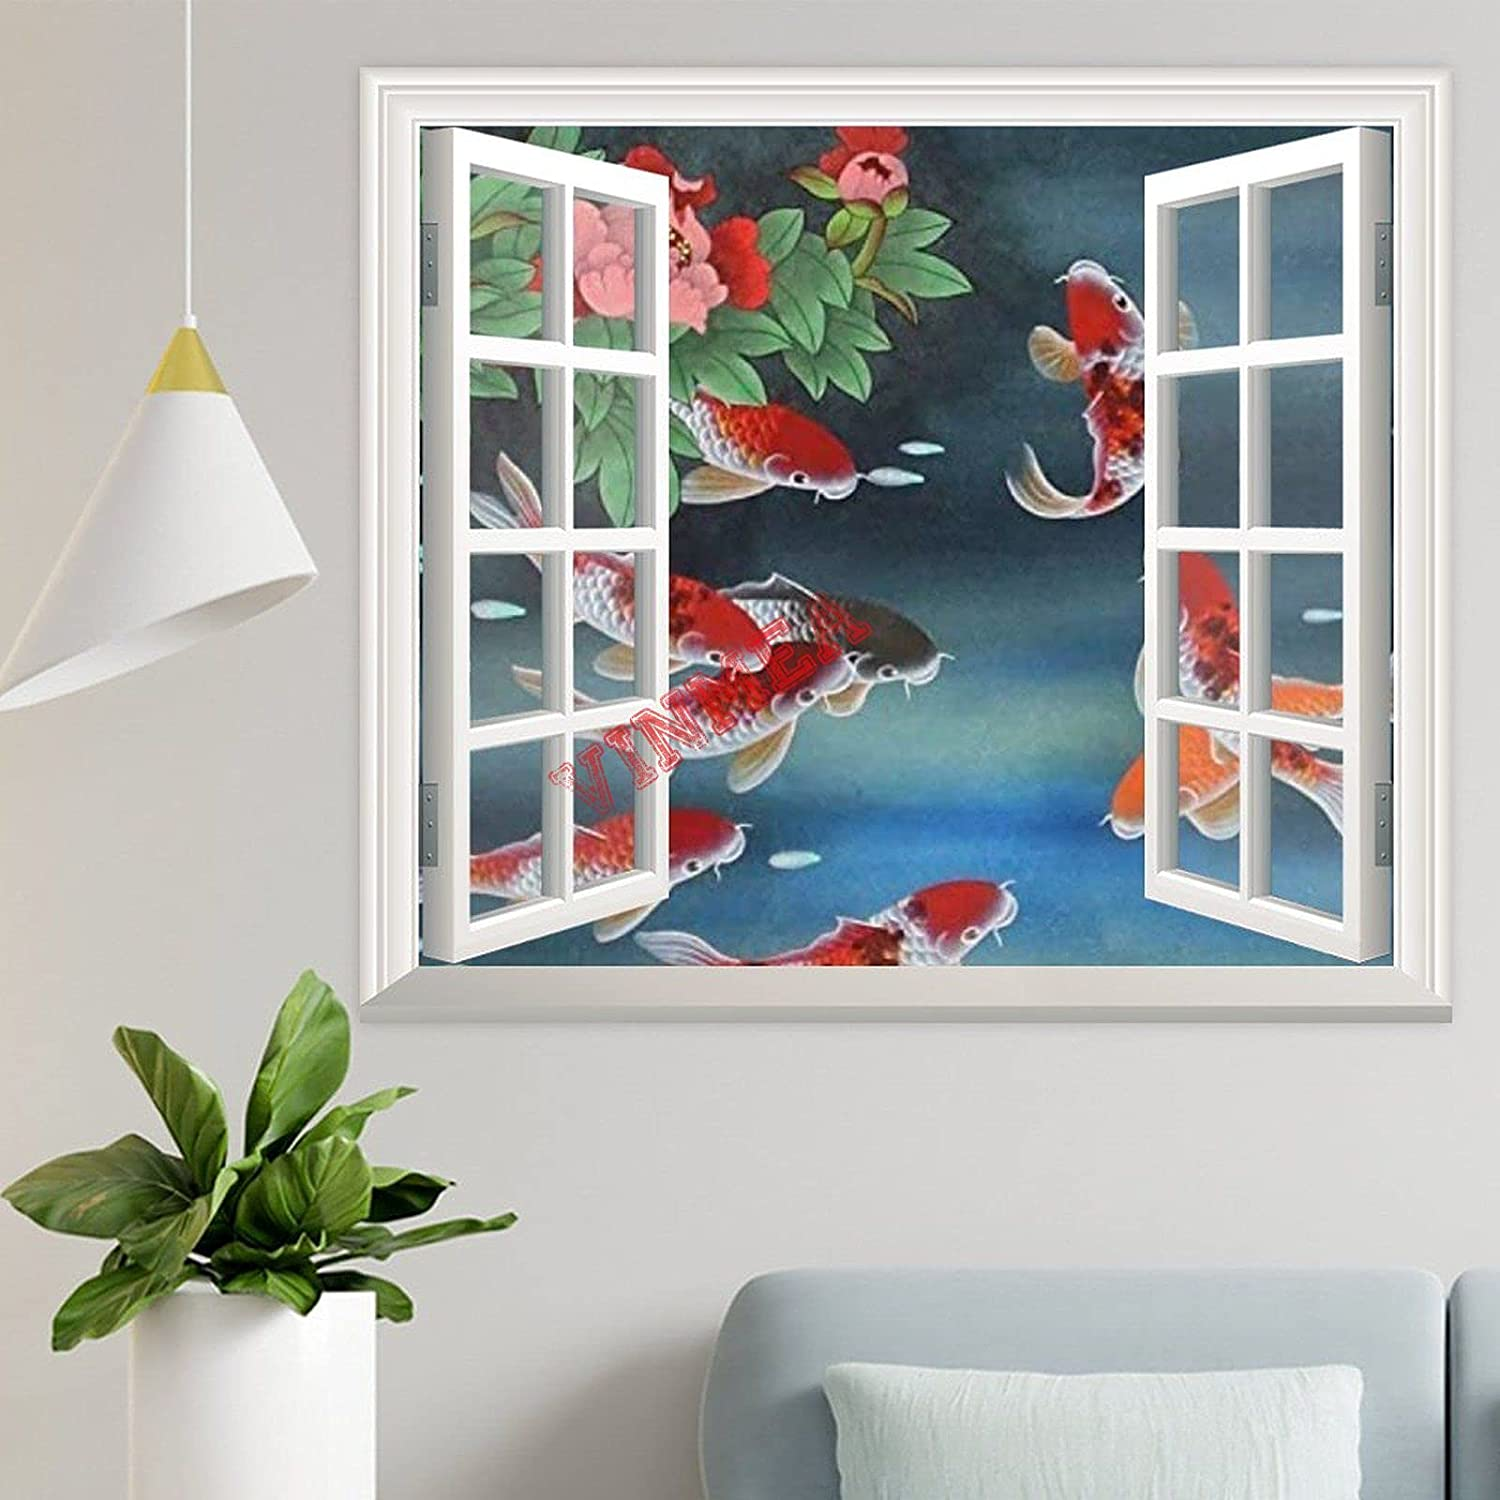 3D Wall Decals Window Looking Out,Koi Fish Wall Stickers Murals Wallpaper Art Decor for Living Room,Home Walls,Kids Bedroom,Nursery (24